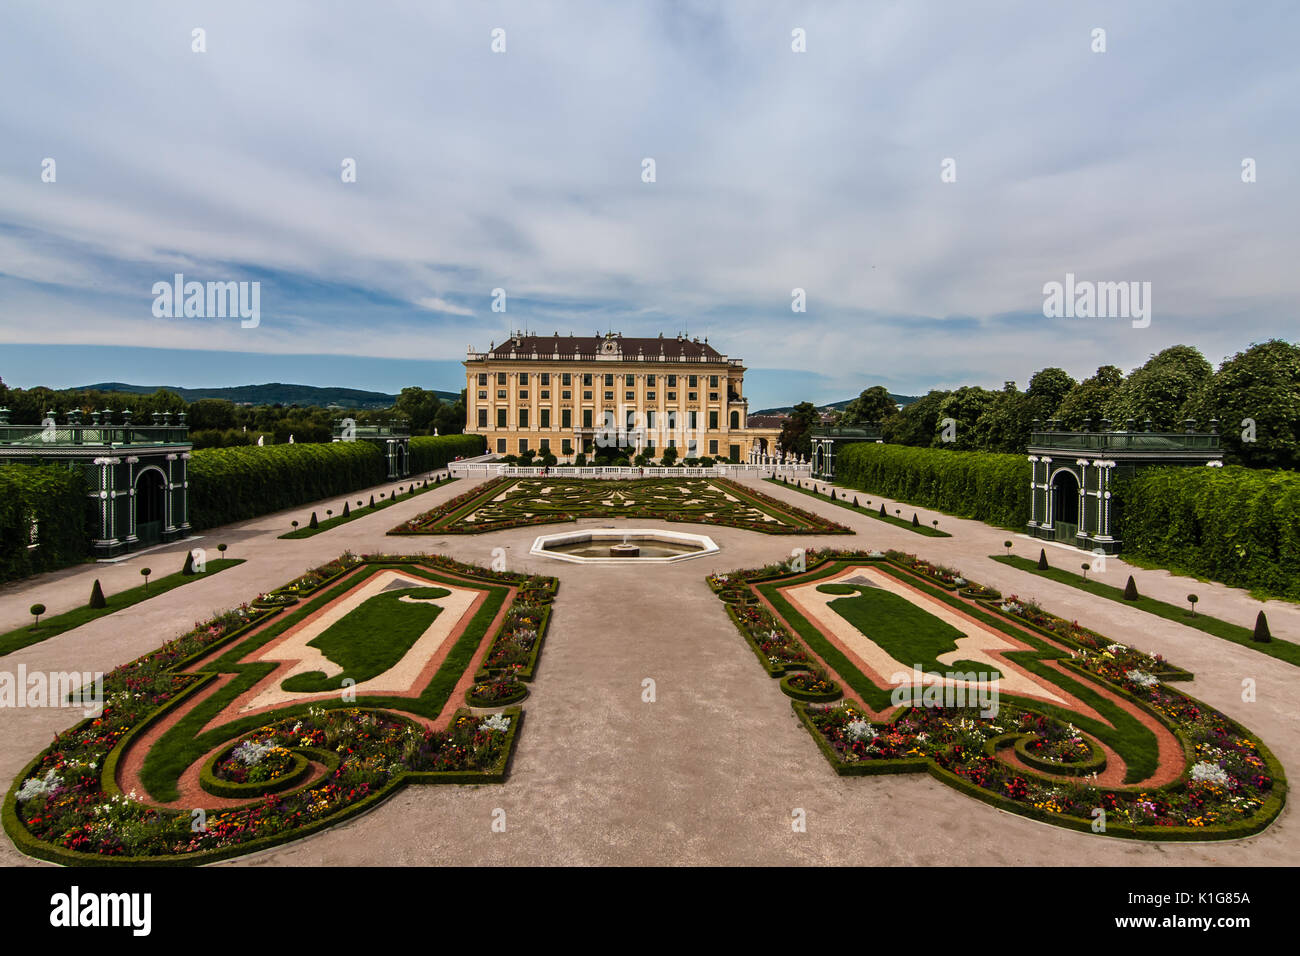 A side view of the Schonbrunn Palace, Vienna - Stock Image